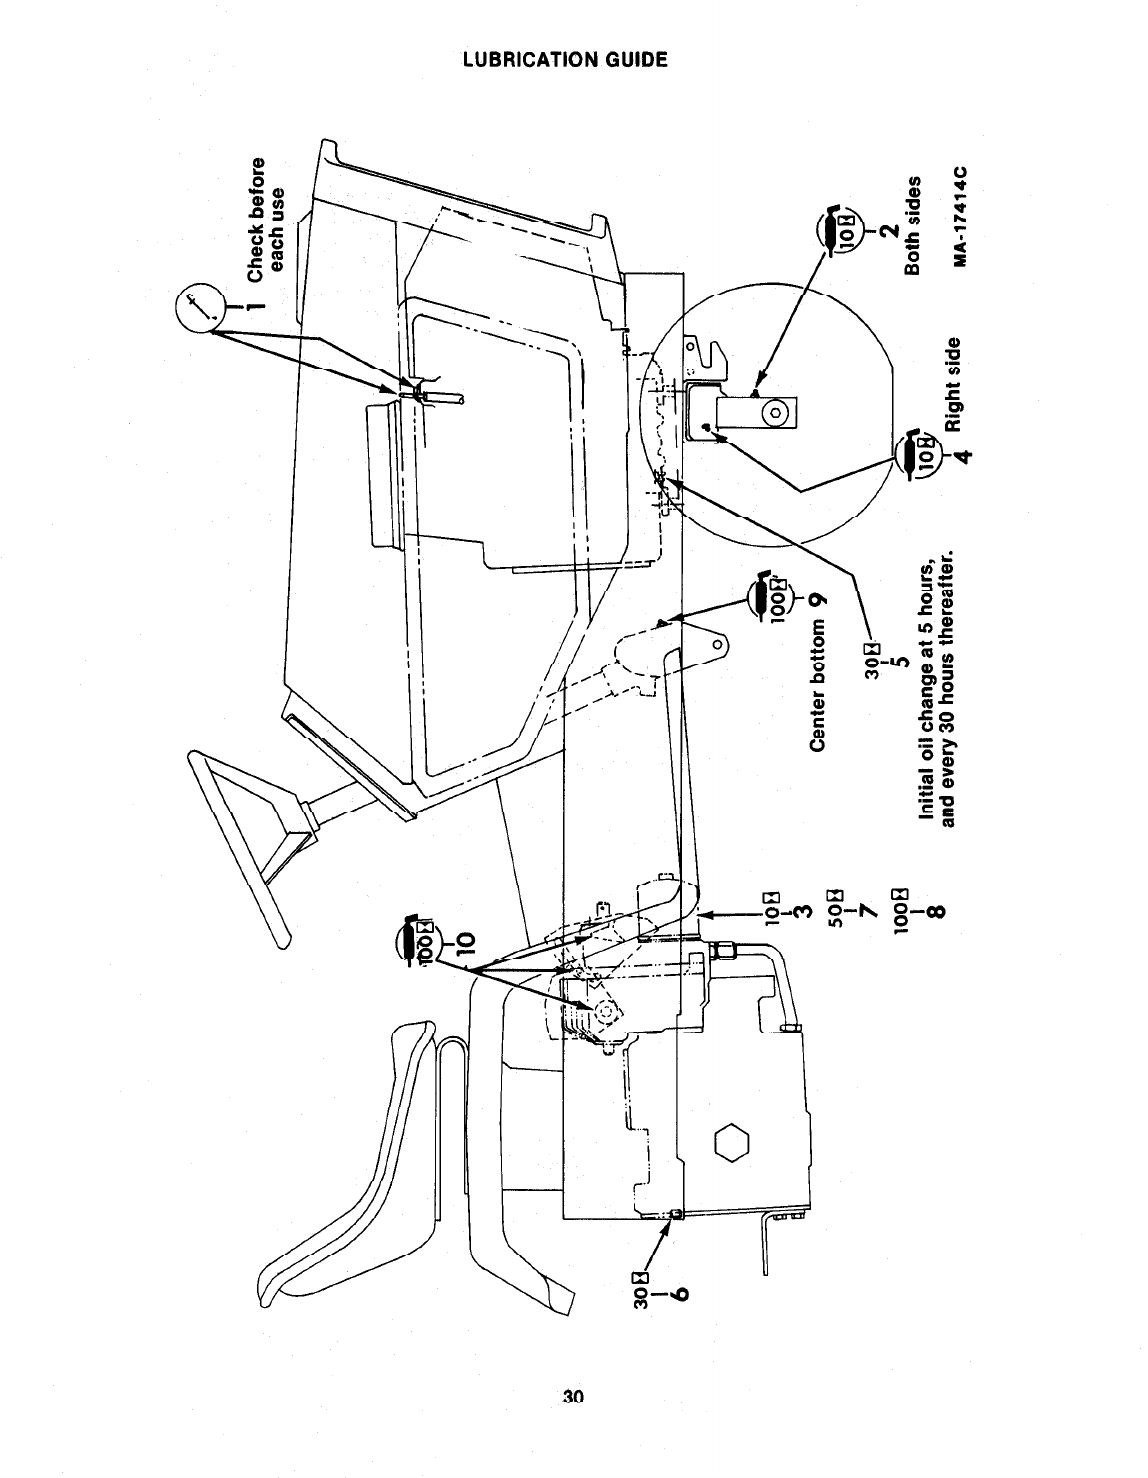 Page 32 of Cub Cadet Lawn Mower 782142 User Guide